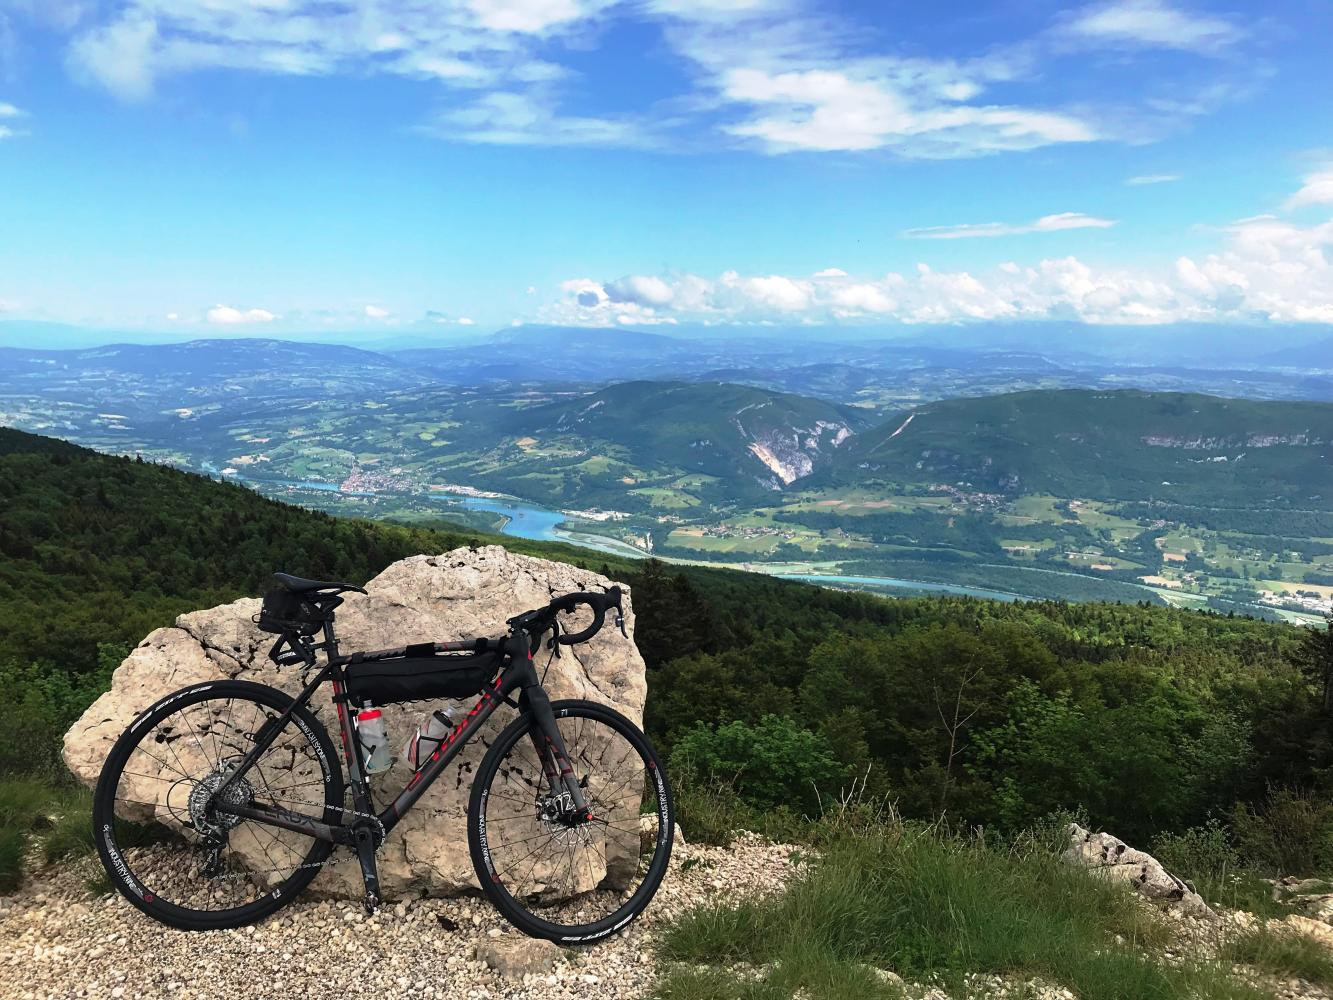 Col du Grand Colombiere - Culoz Bike Climb - PJAMM Cycling